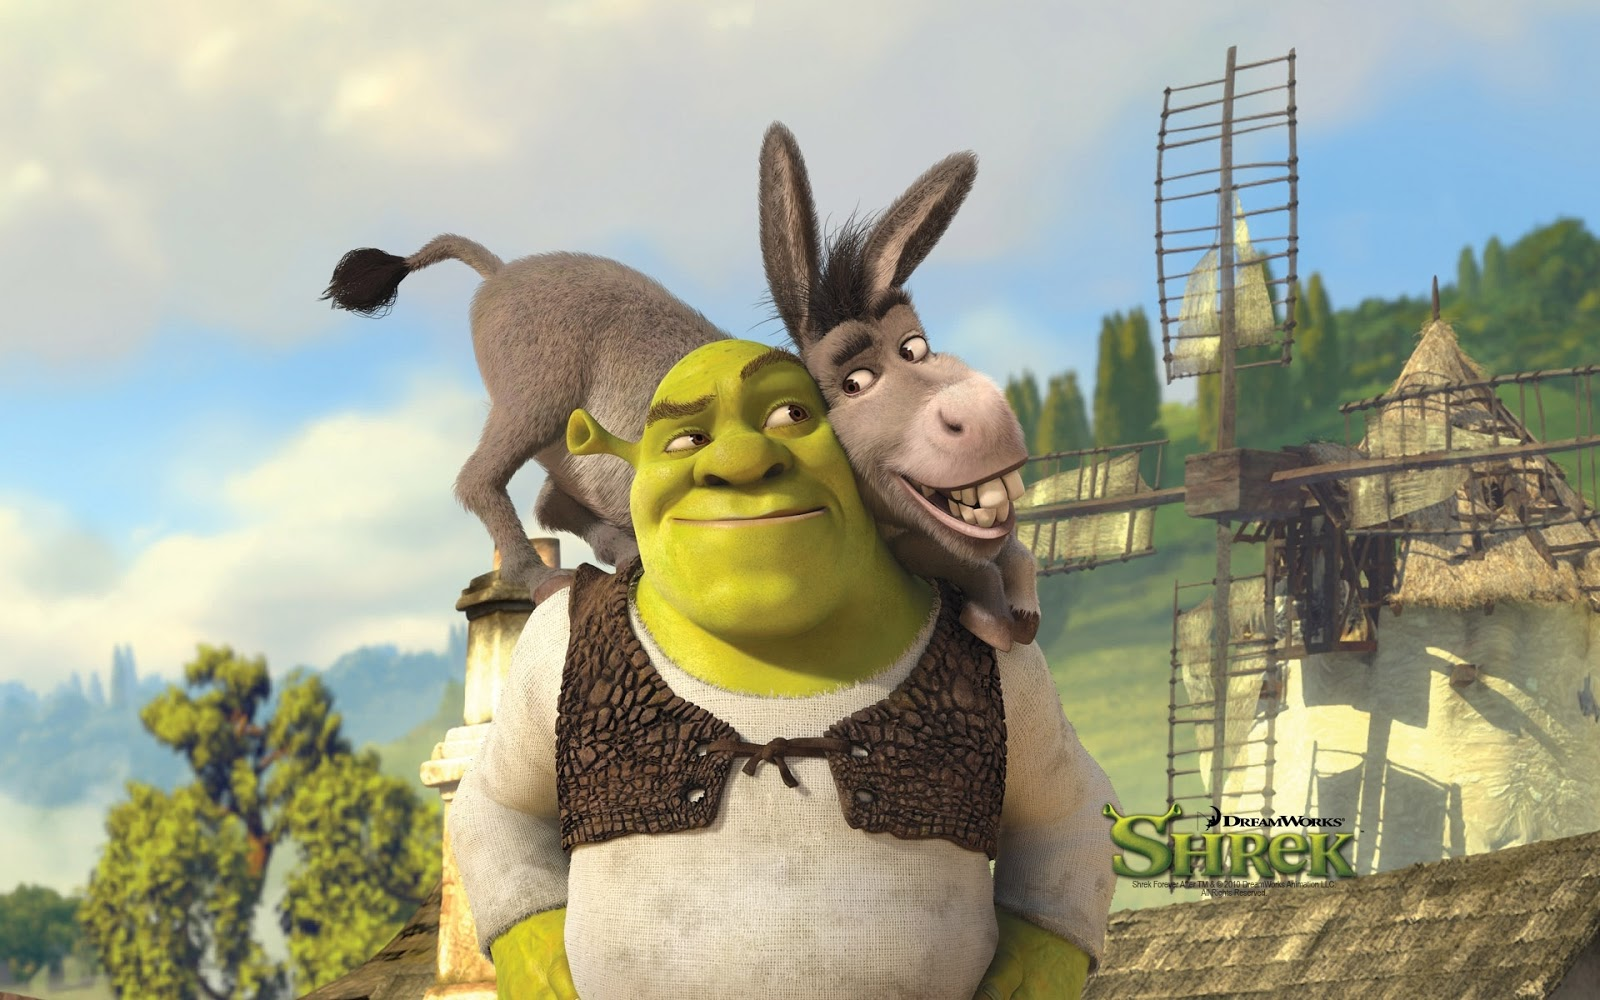 http://2.bp.blogspot.com/-_vhMJm-LHwo/UN4milhulAI/AAAAAAAAAwk/Ru3Qp5Sqhnk/s1600/shrek-donkey-cartoon-wallpapers-keyword-136737.jpg